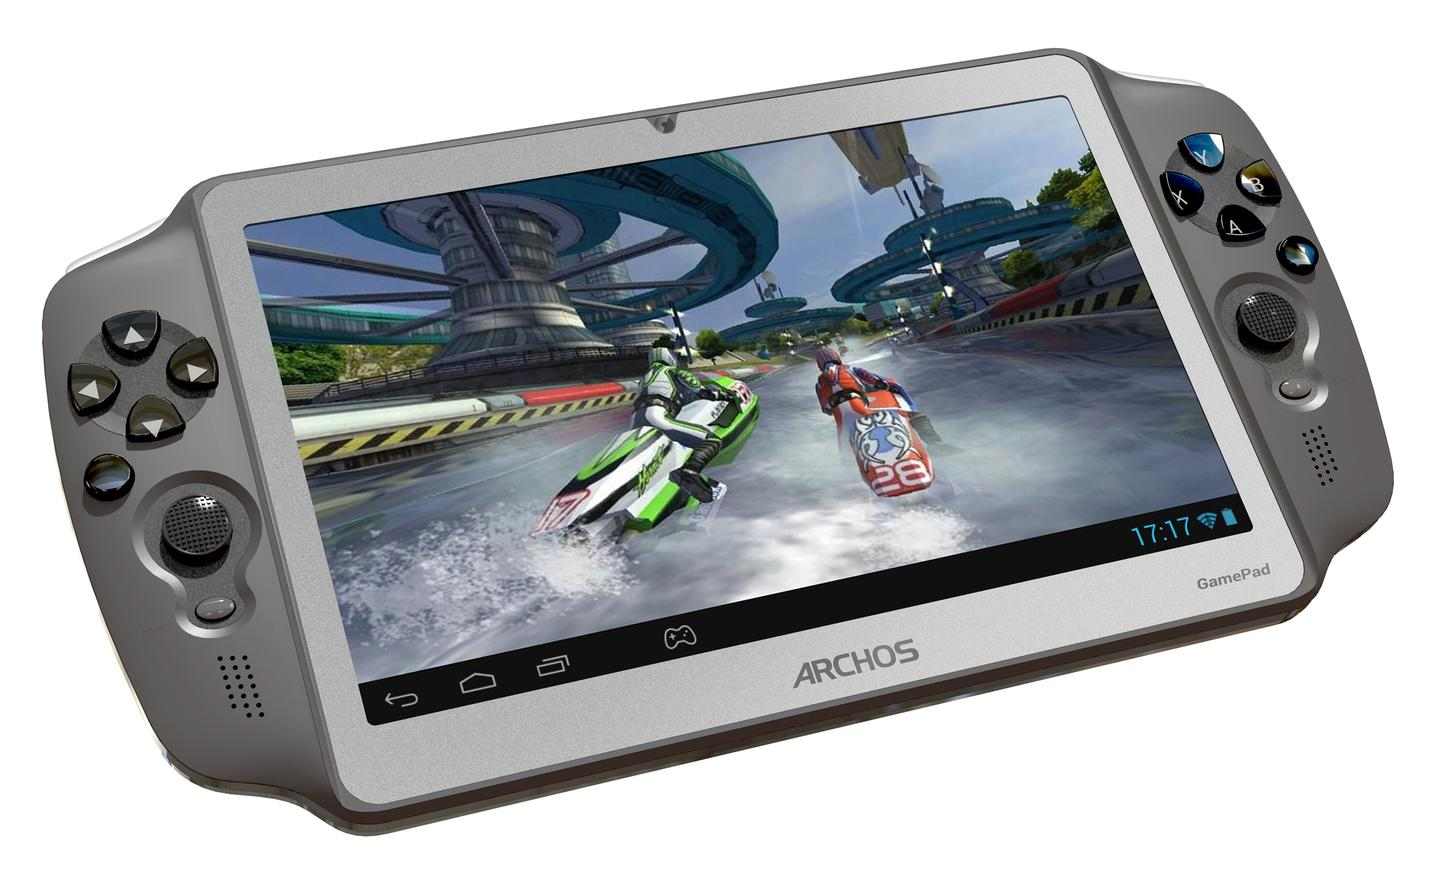 The ARCHOS GamePad adds physical buttons to Android games